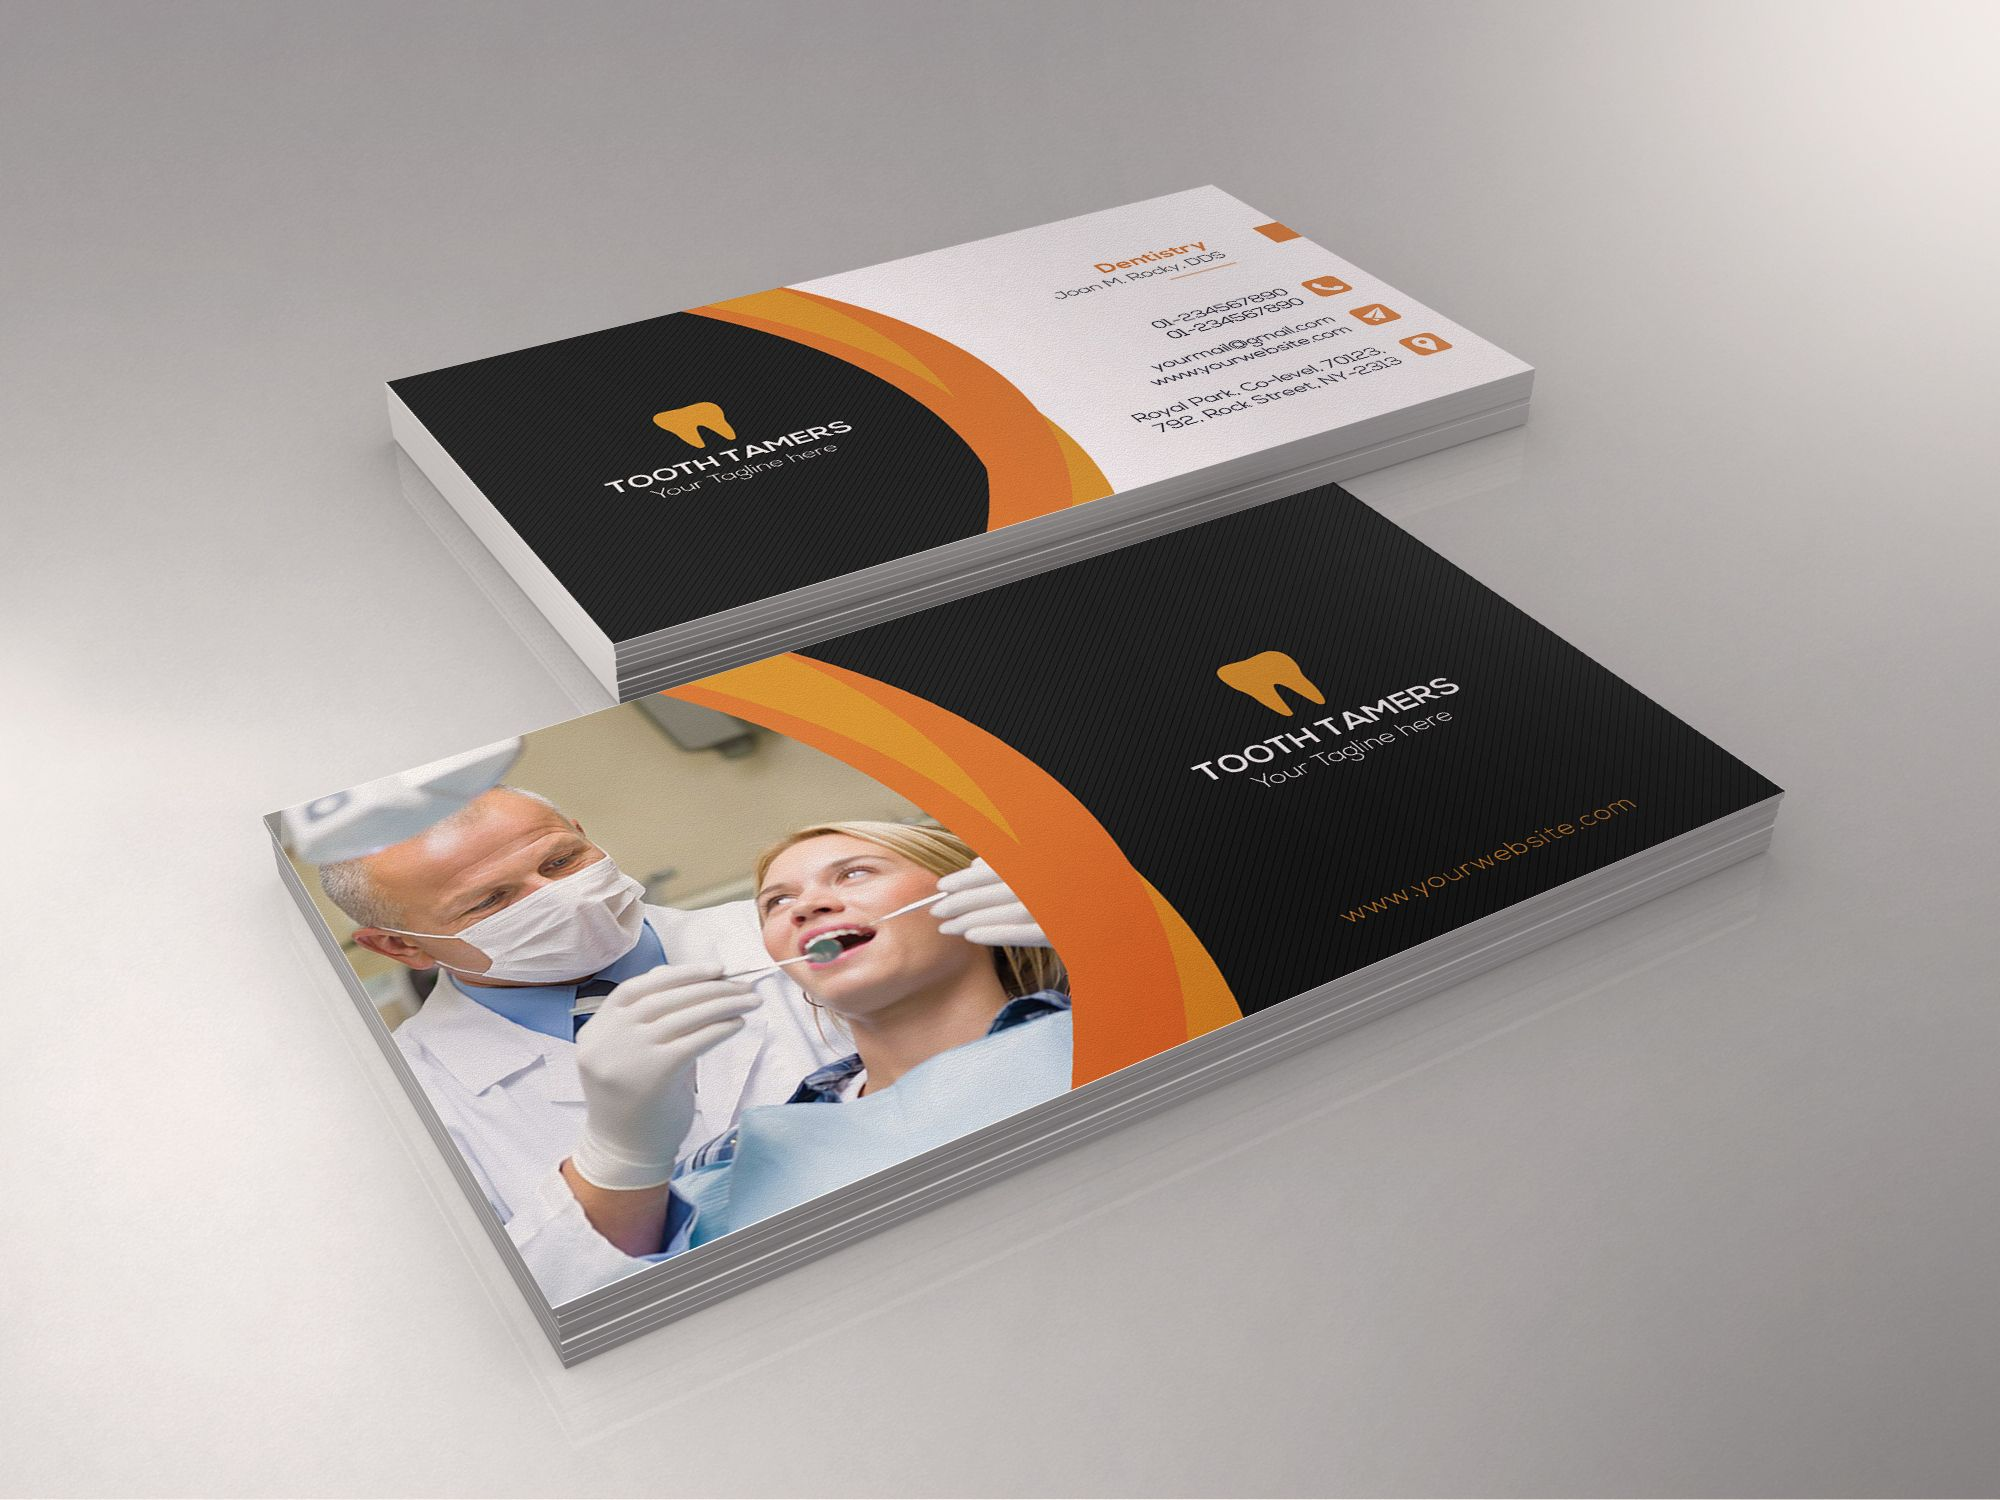 This Is A Dental Business Card Template This Template Download Contains A 300 Dpi Print Ready Cmyk Psd Dental Business Cards Dental Business Dental Marketing